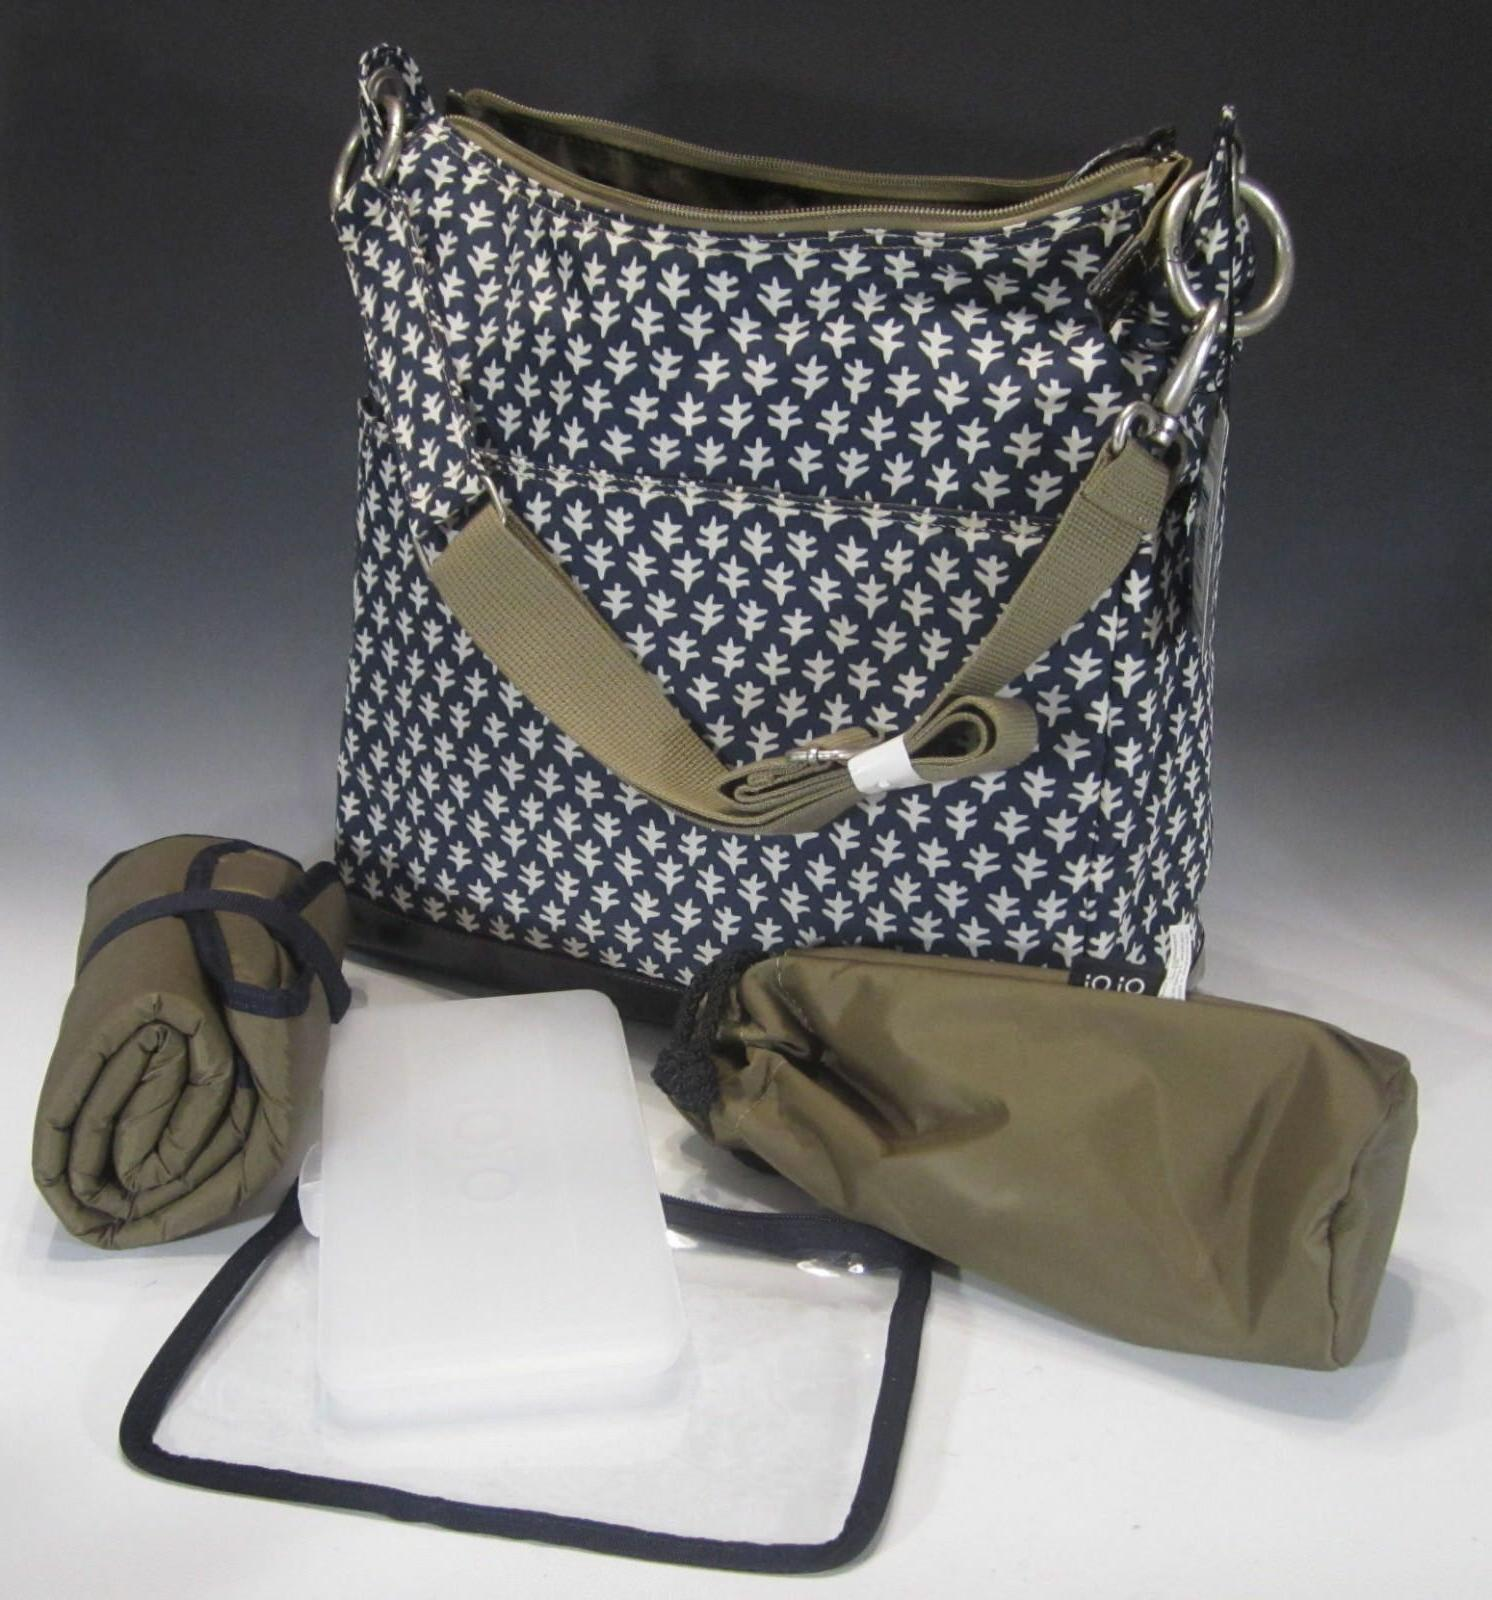 Two Hobo Diaper Bag